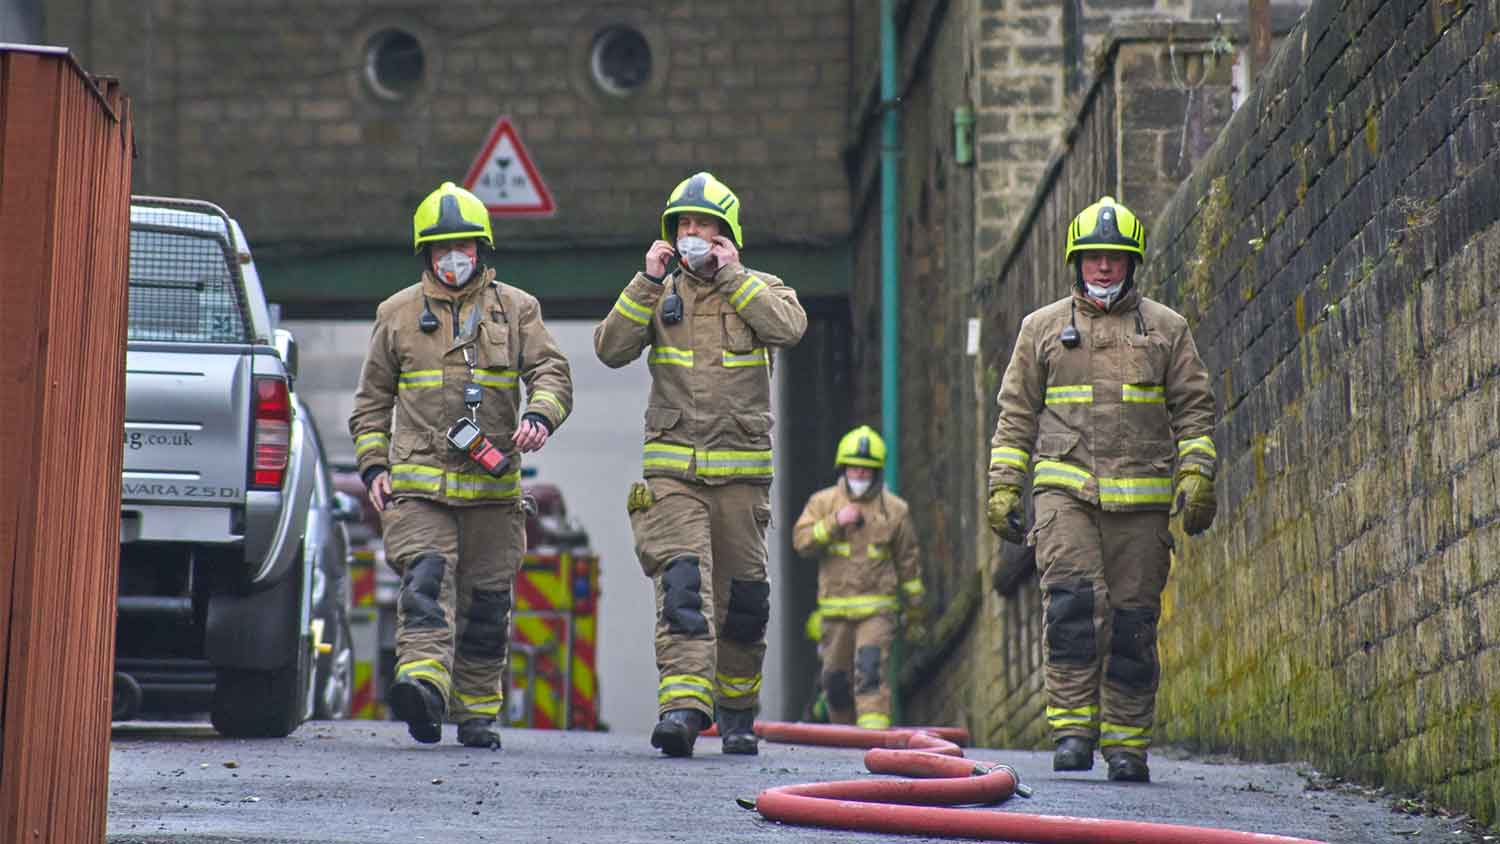 Fire fighters on call, walking with paper masks down a street